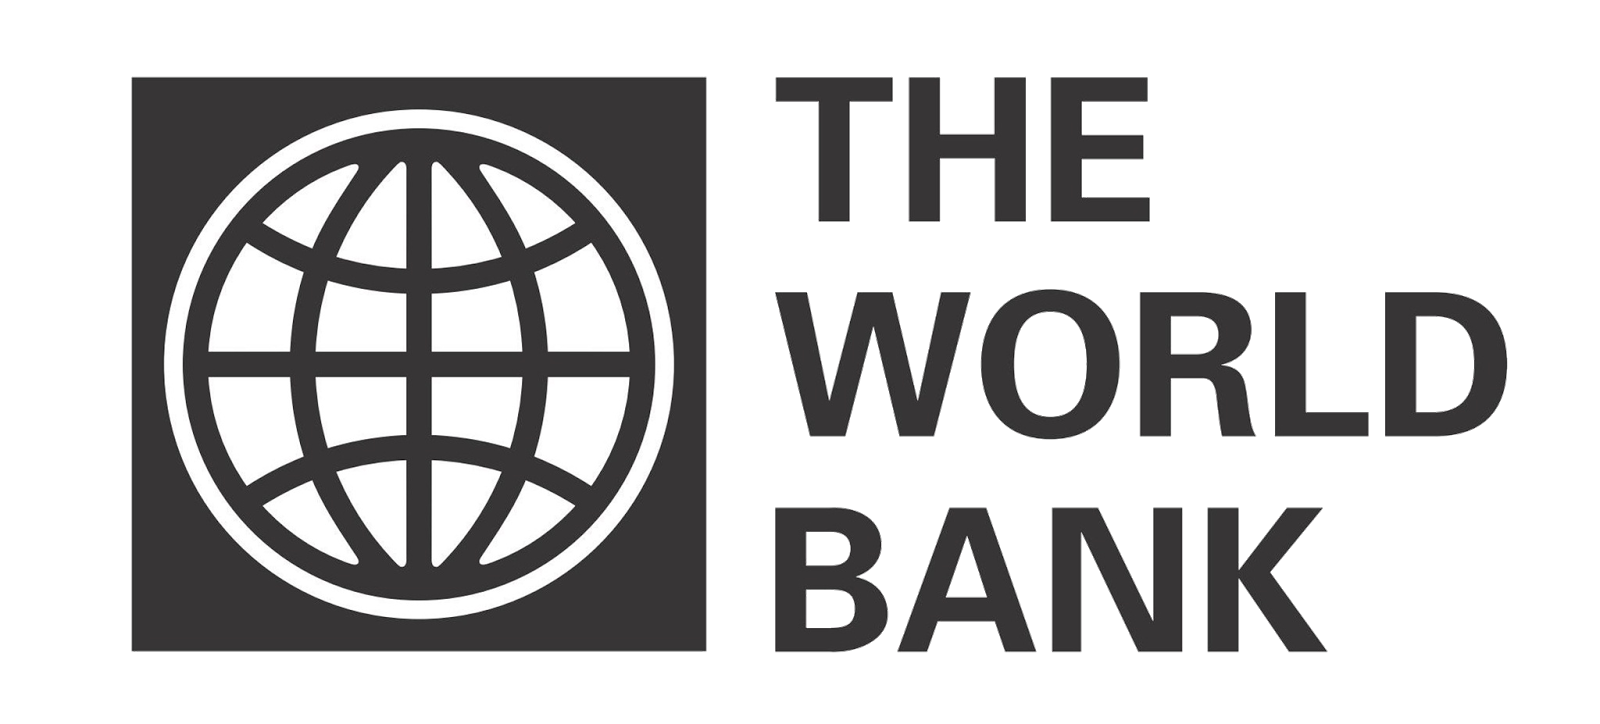 horrifying loan interest in the imf and world bank Impoverishing a continent: the world bank and  the late 1990s the loan terms of the bank and the imf eviscerated the  losses42 given the horrifying social.